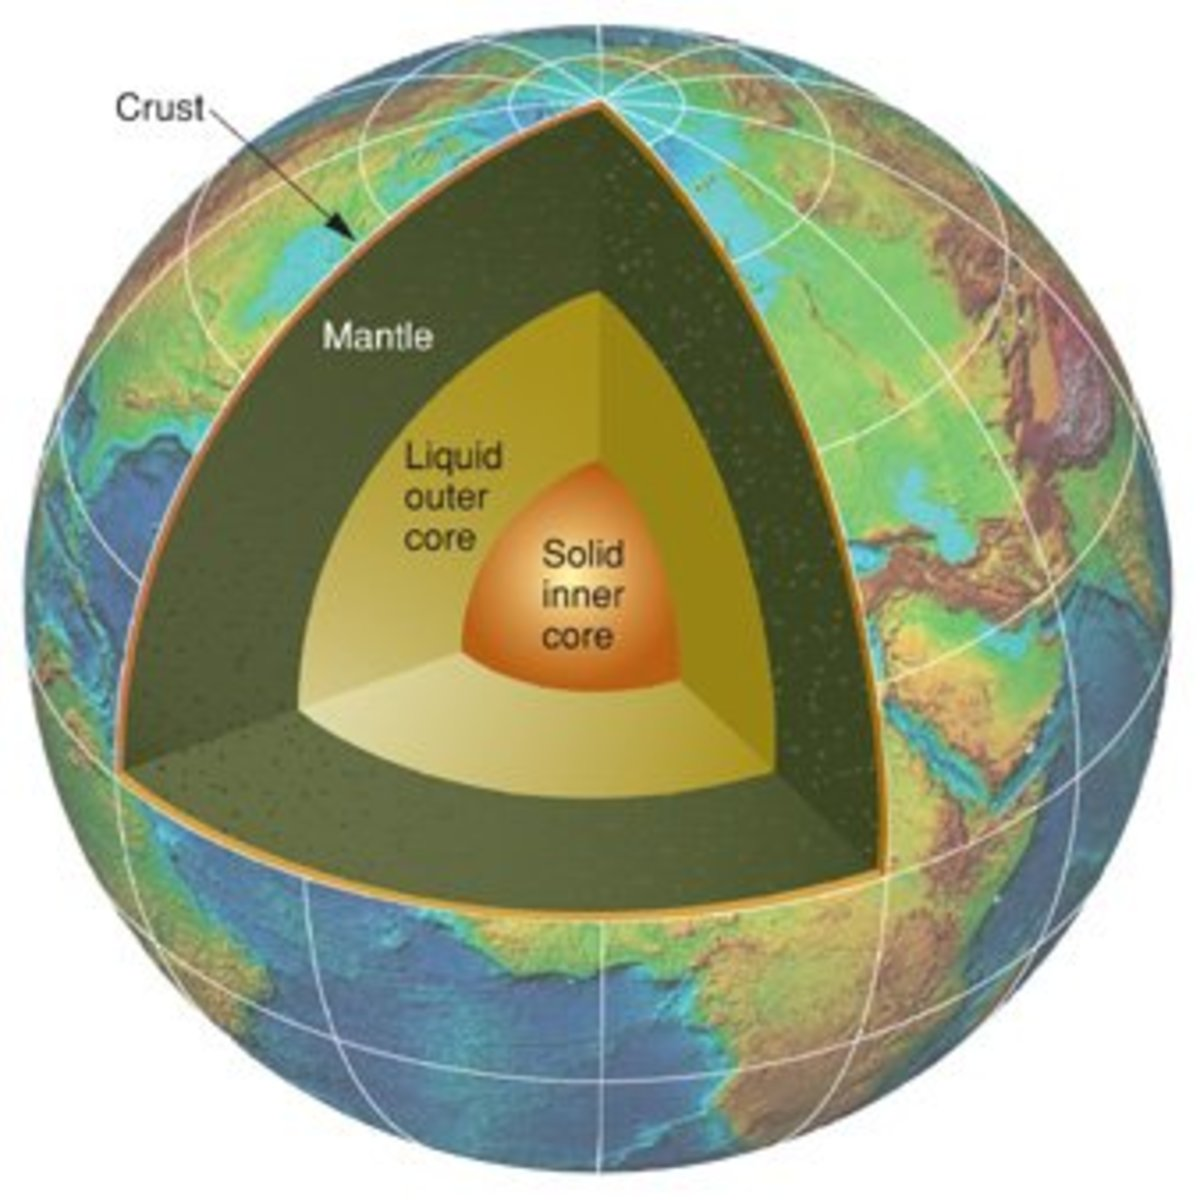 Crust: Volcano eruptions can be understood by first looking at the earth's crust